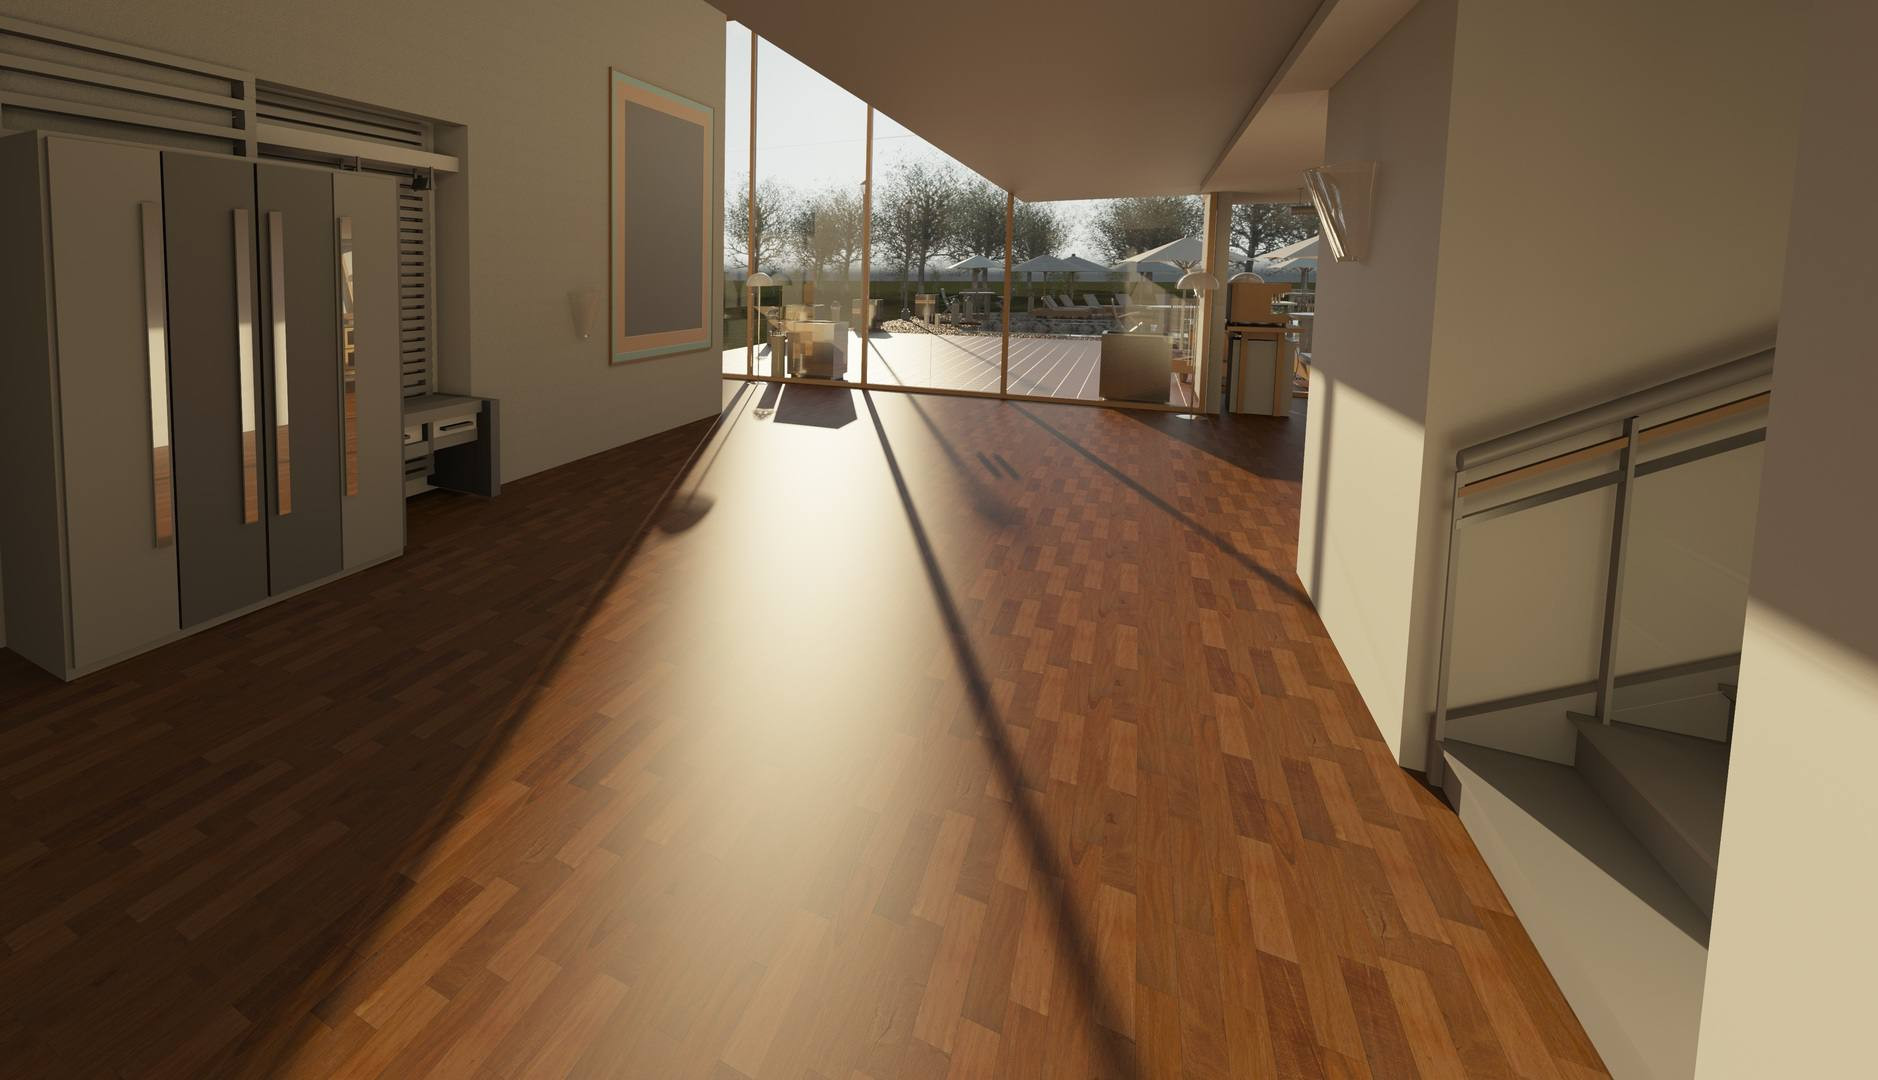 how do you install engineered hardwood flooring of common flooring types currently used in renovation and building in architecture wood house floor interior window 917178 pxhere com 5ba27a2cc9e77c00503b27b9